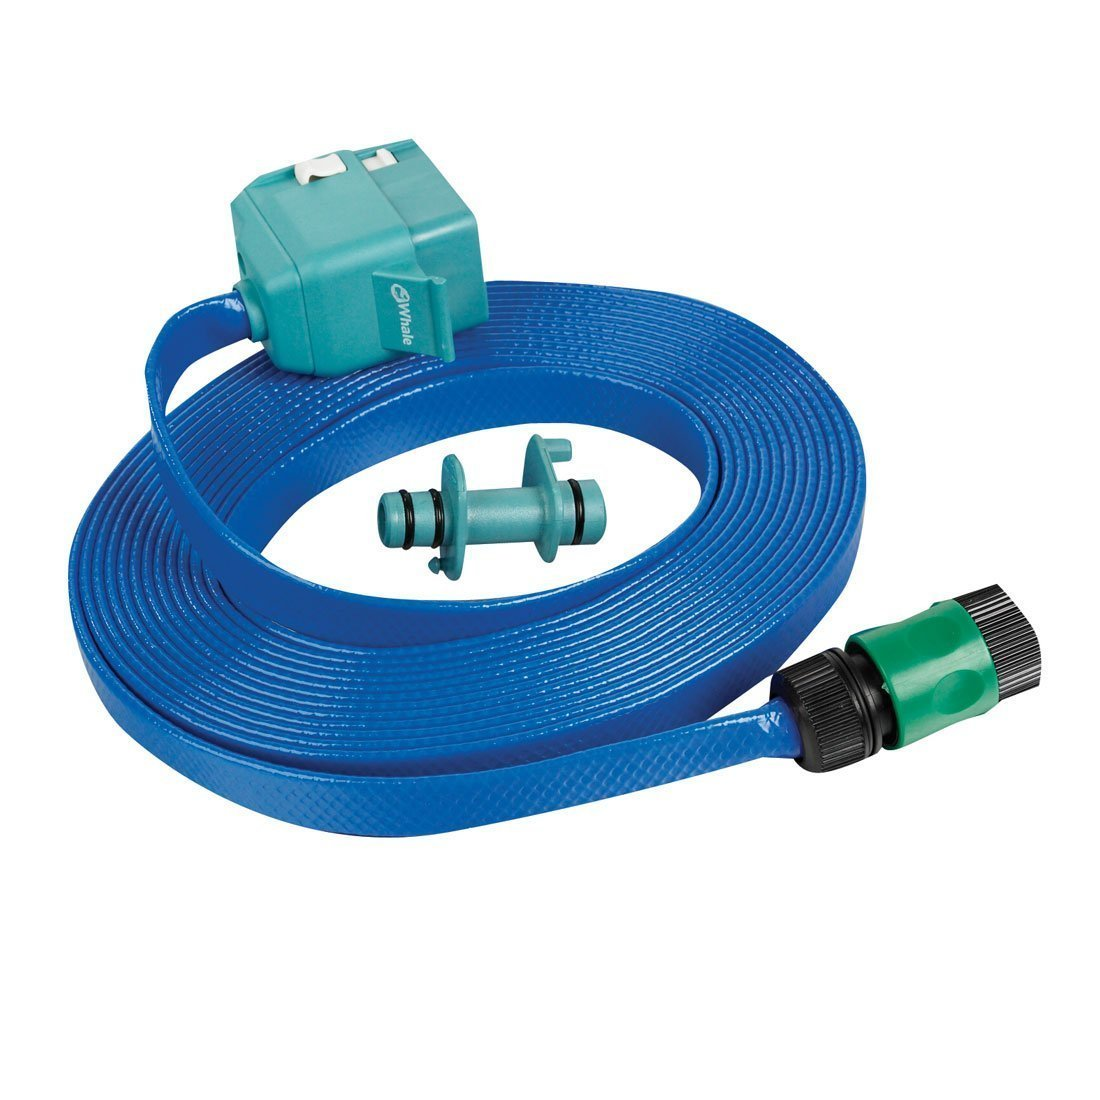 Houston water hook up - Find out how a water meter determines